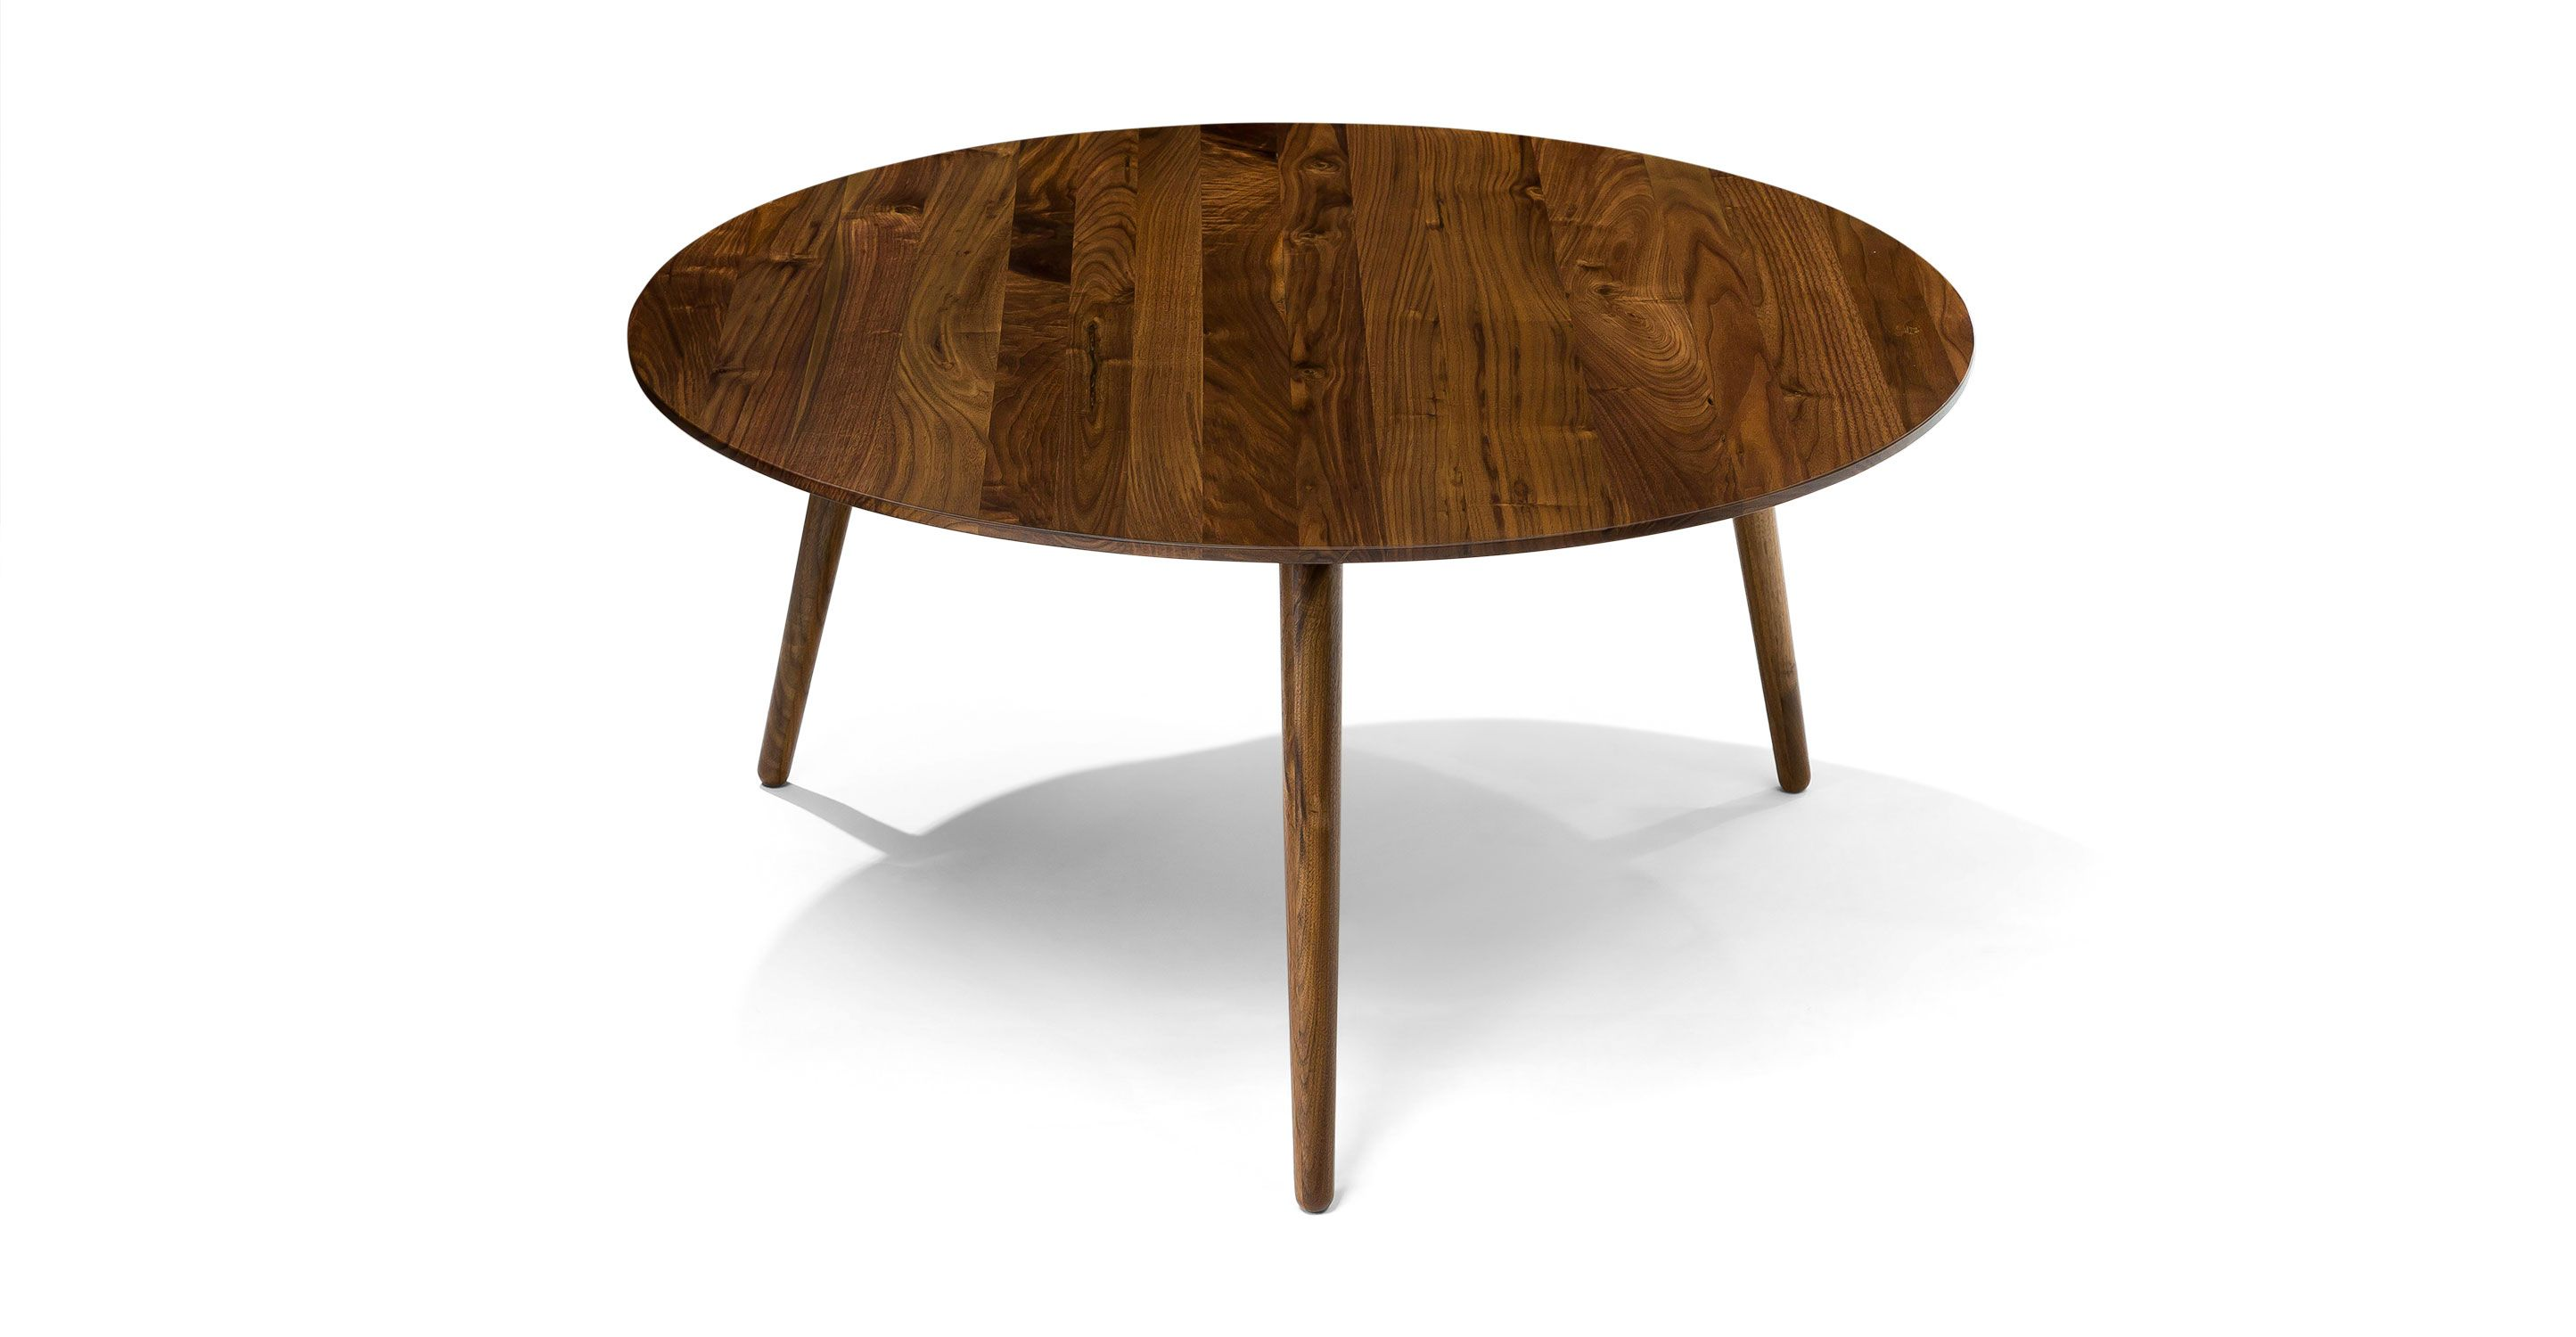 Amoeba Wild Walnut Coffee Table Coffee Tables Bryght Modern Mid Century And Scand Mid Century Modern Coffee Table Coffee Table Wood Modern Coffee Tables [ 1500 x 2890 Pixel ]